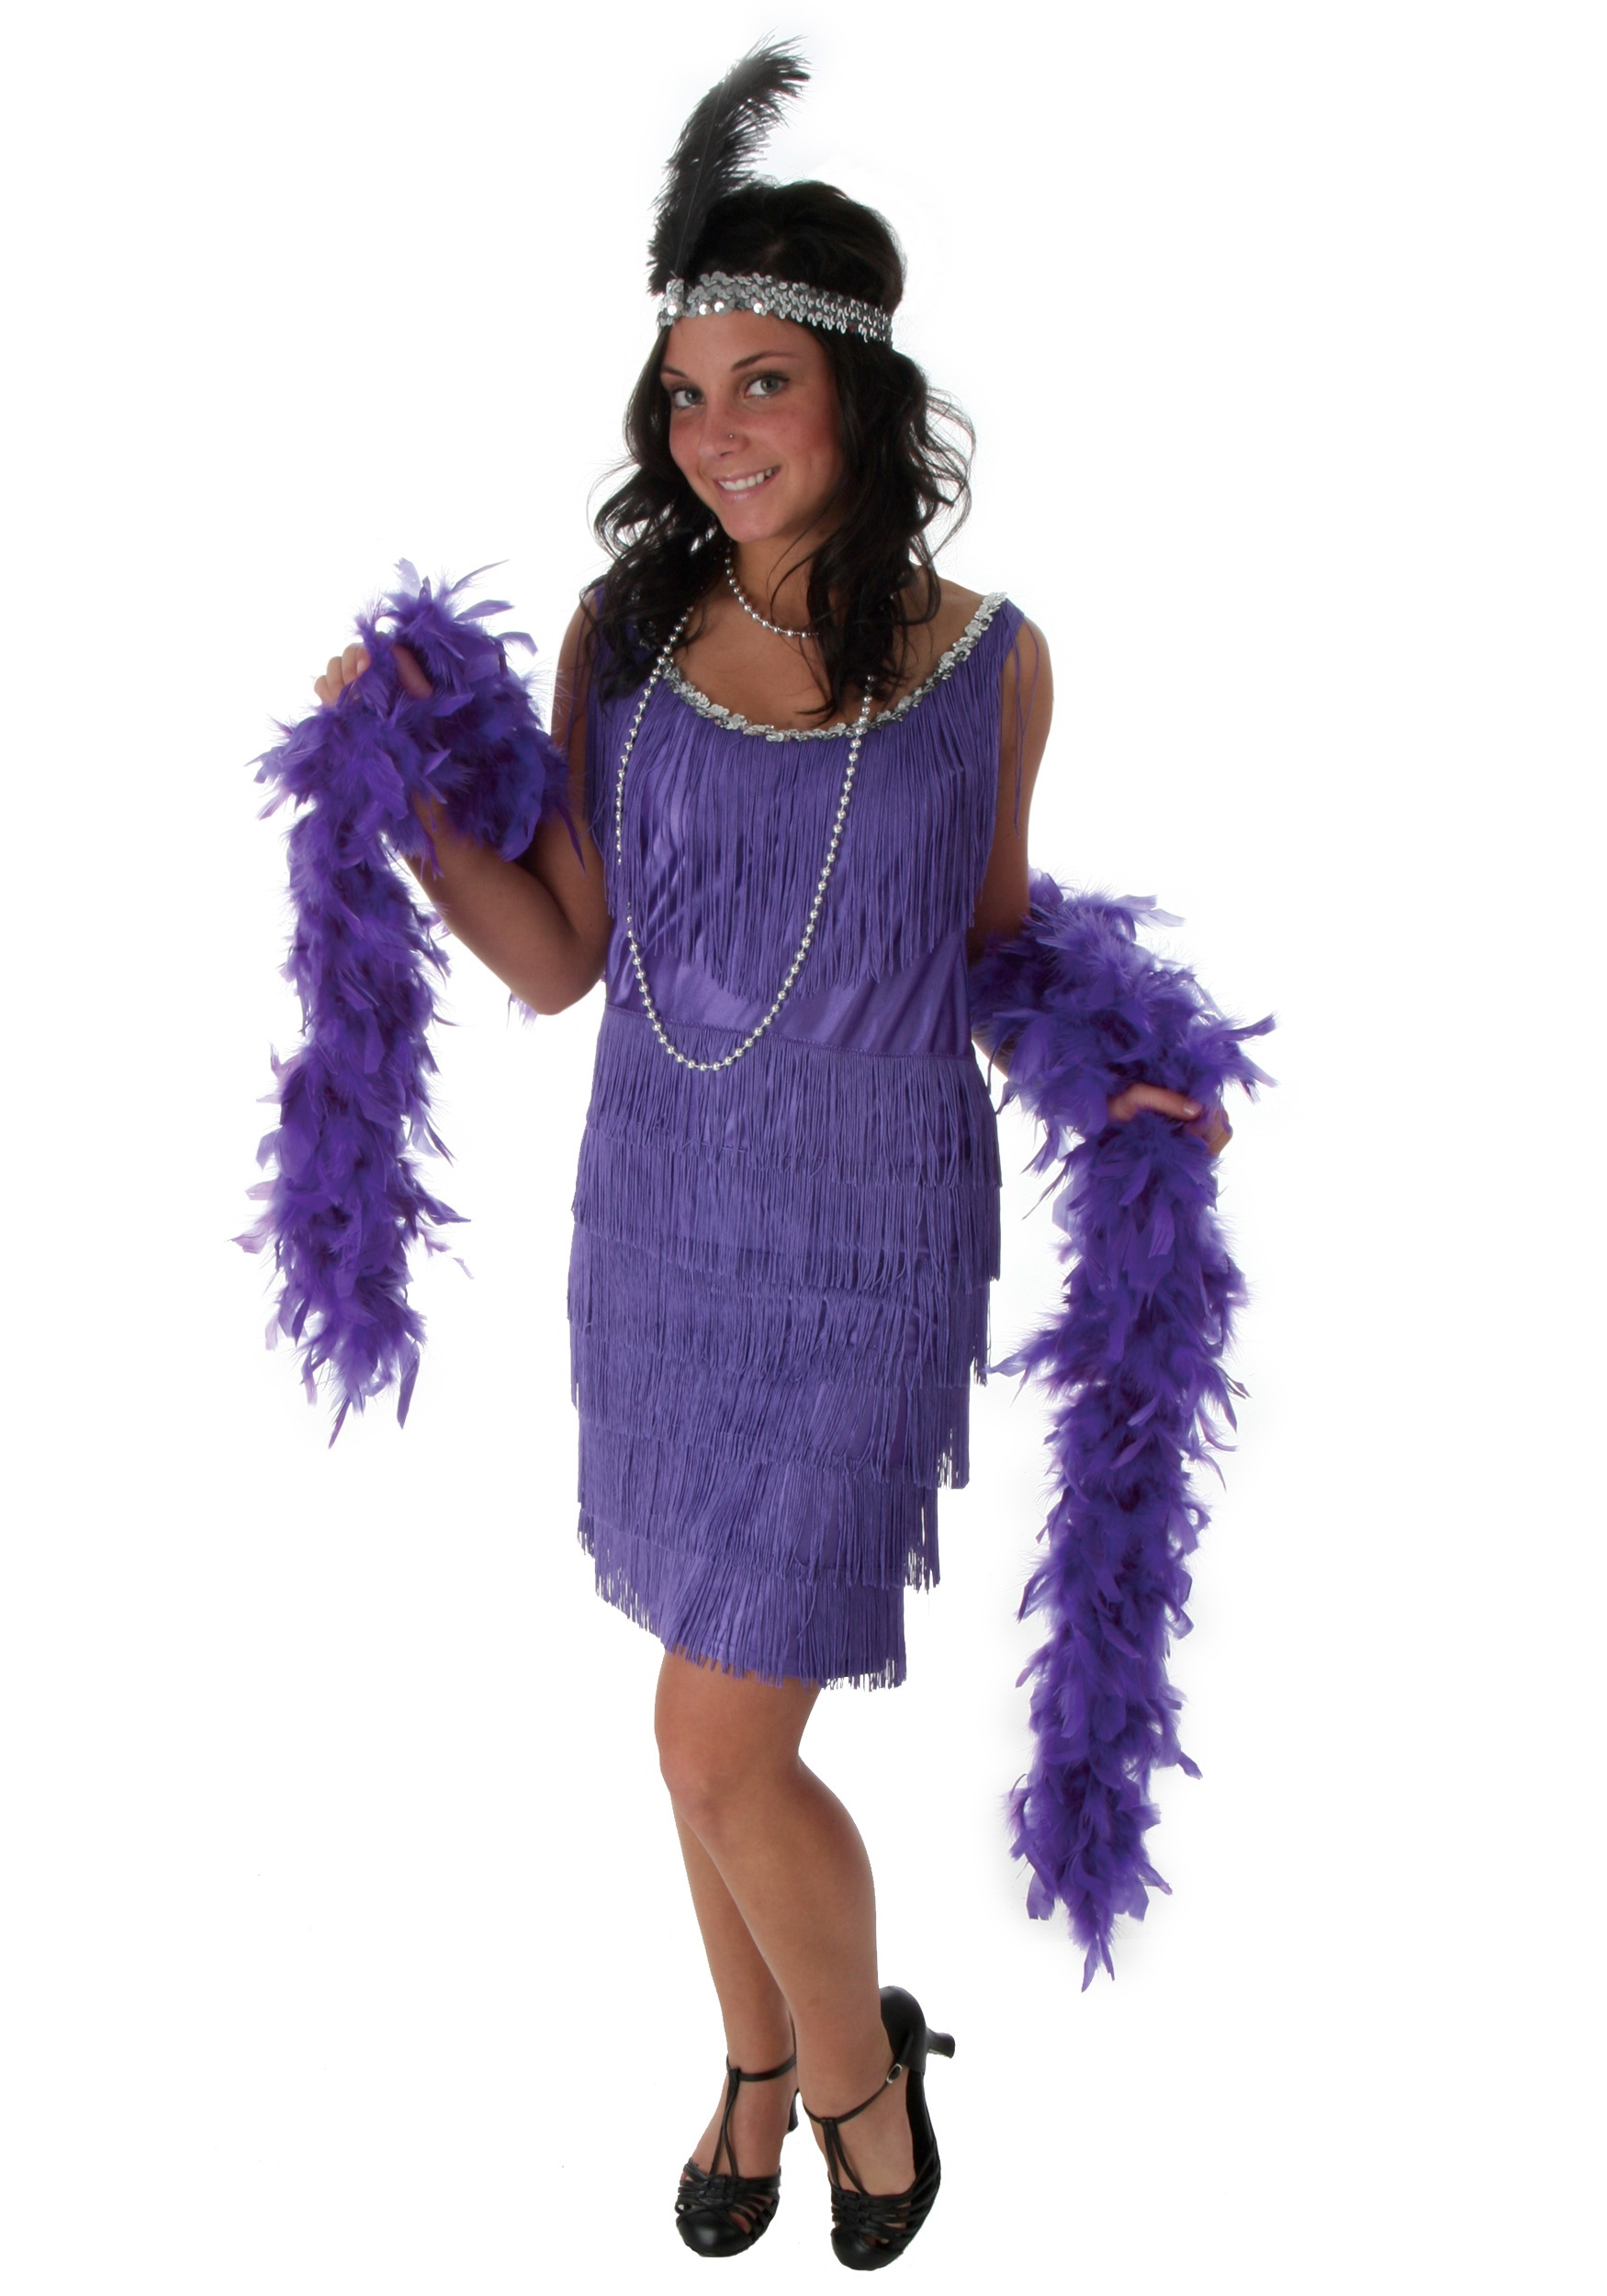 flapper fringe dress costumeFlapper Costumes   1920s Flapper Girl Dresses BMxrtuOe